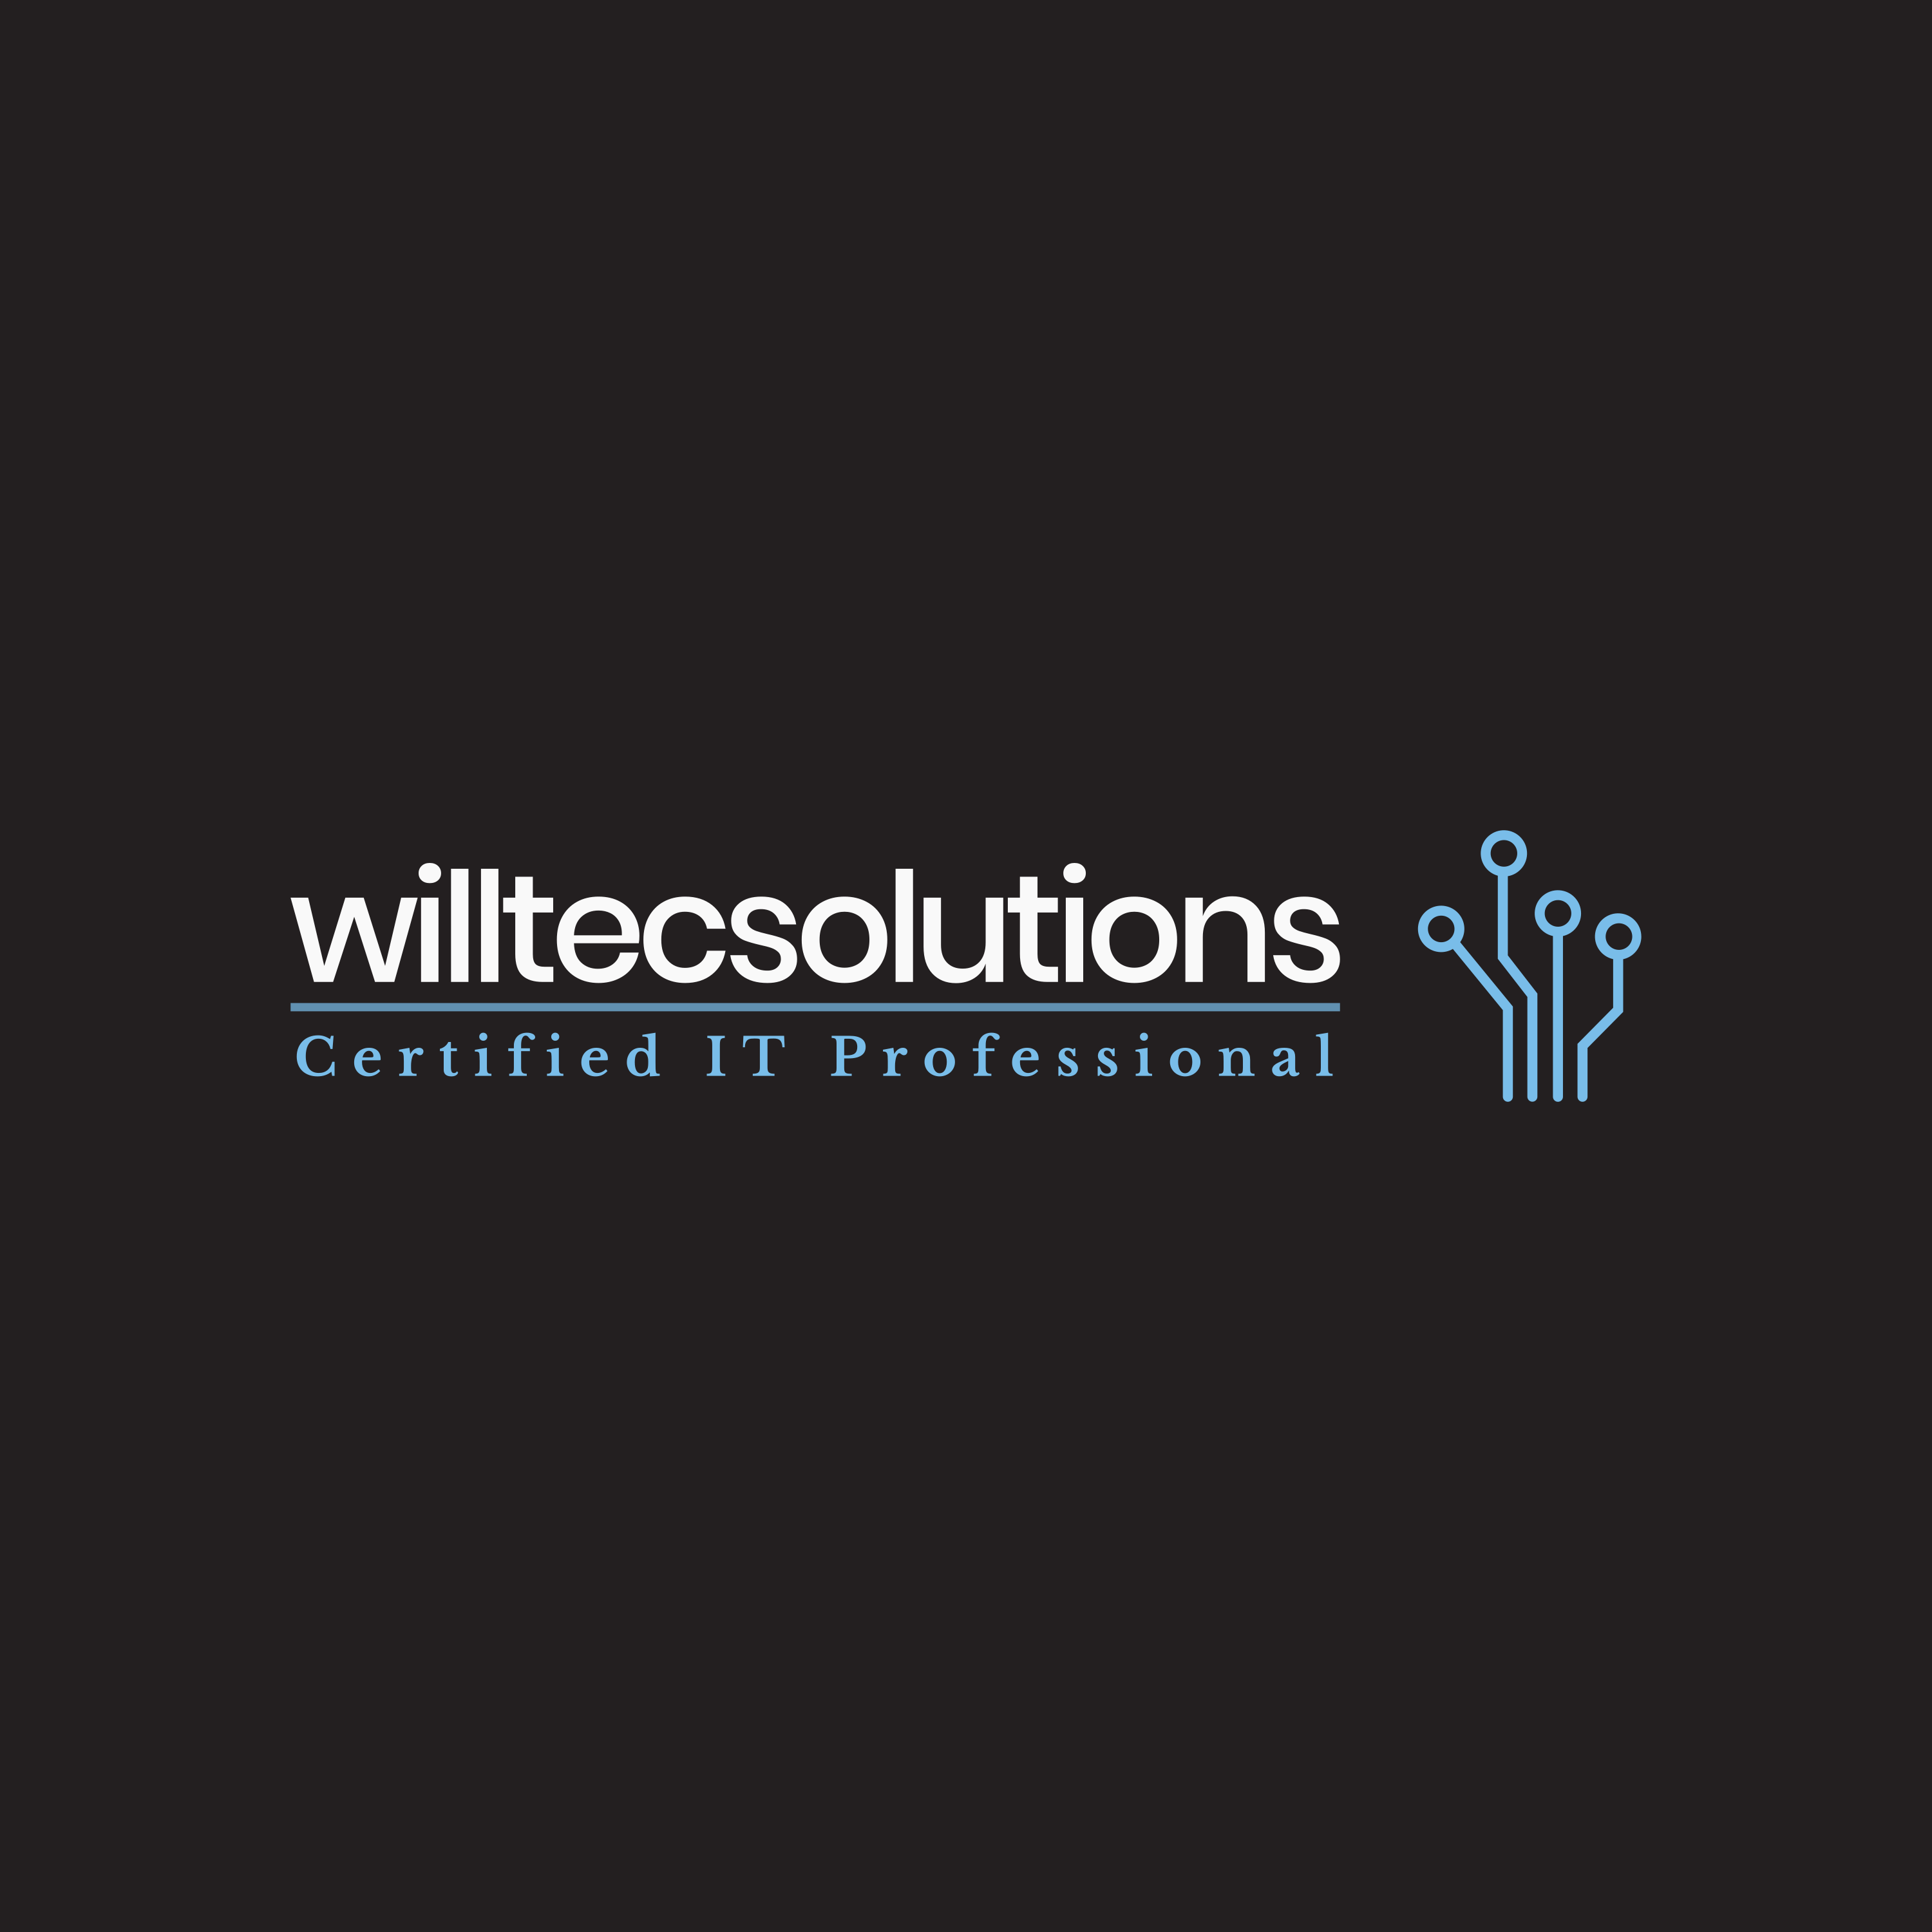 willtecsolutions